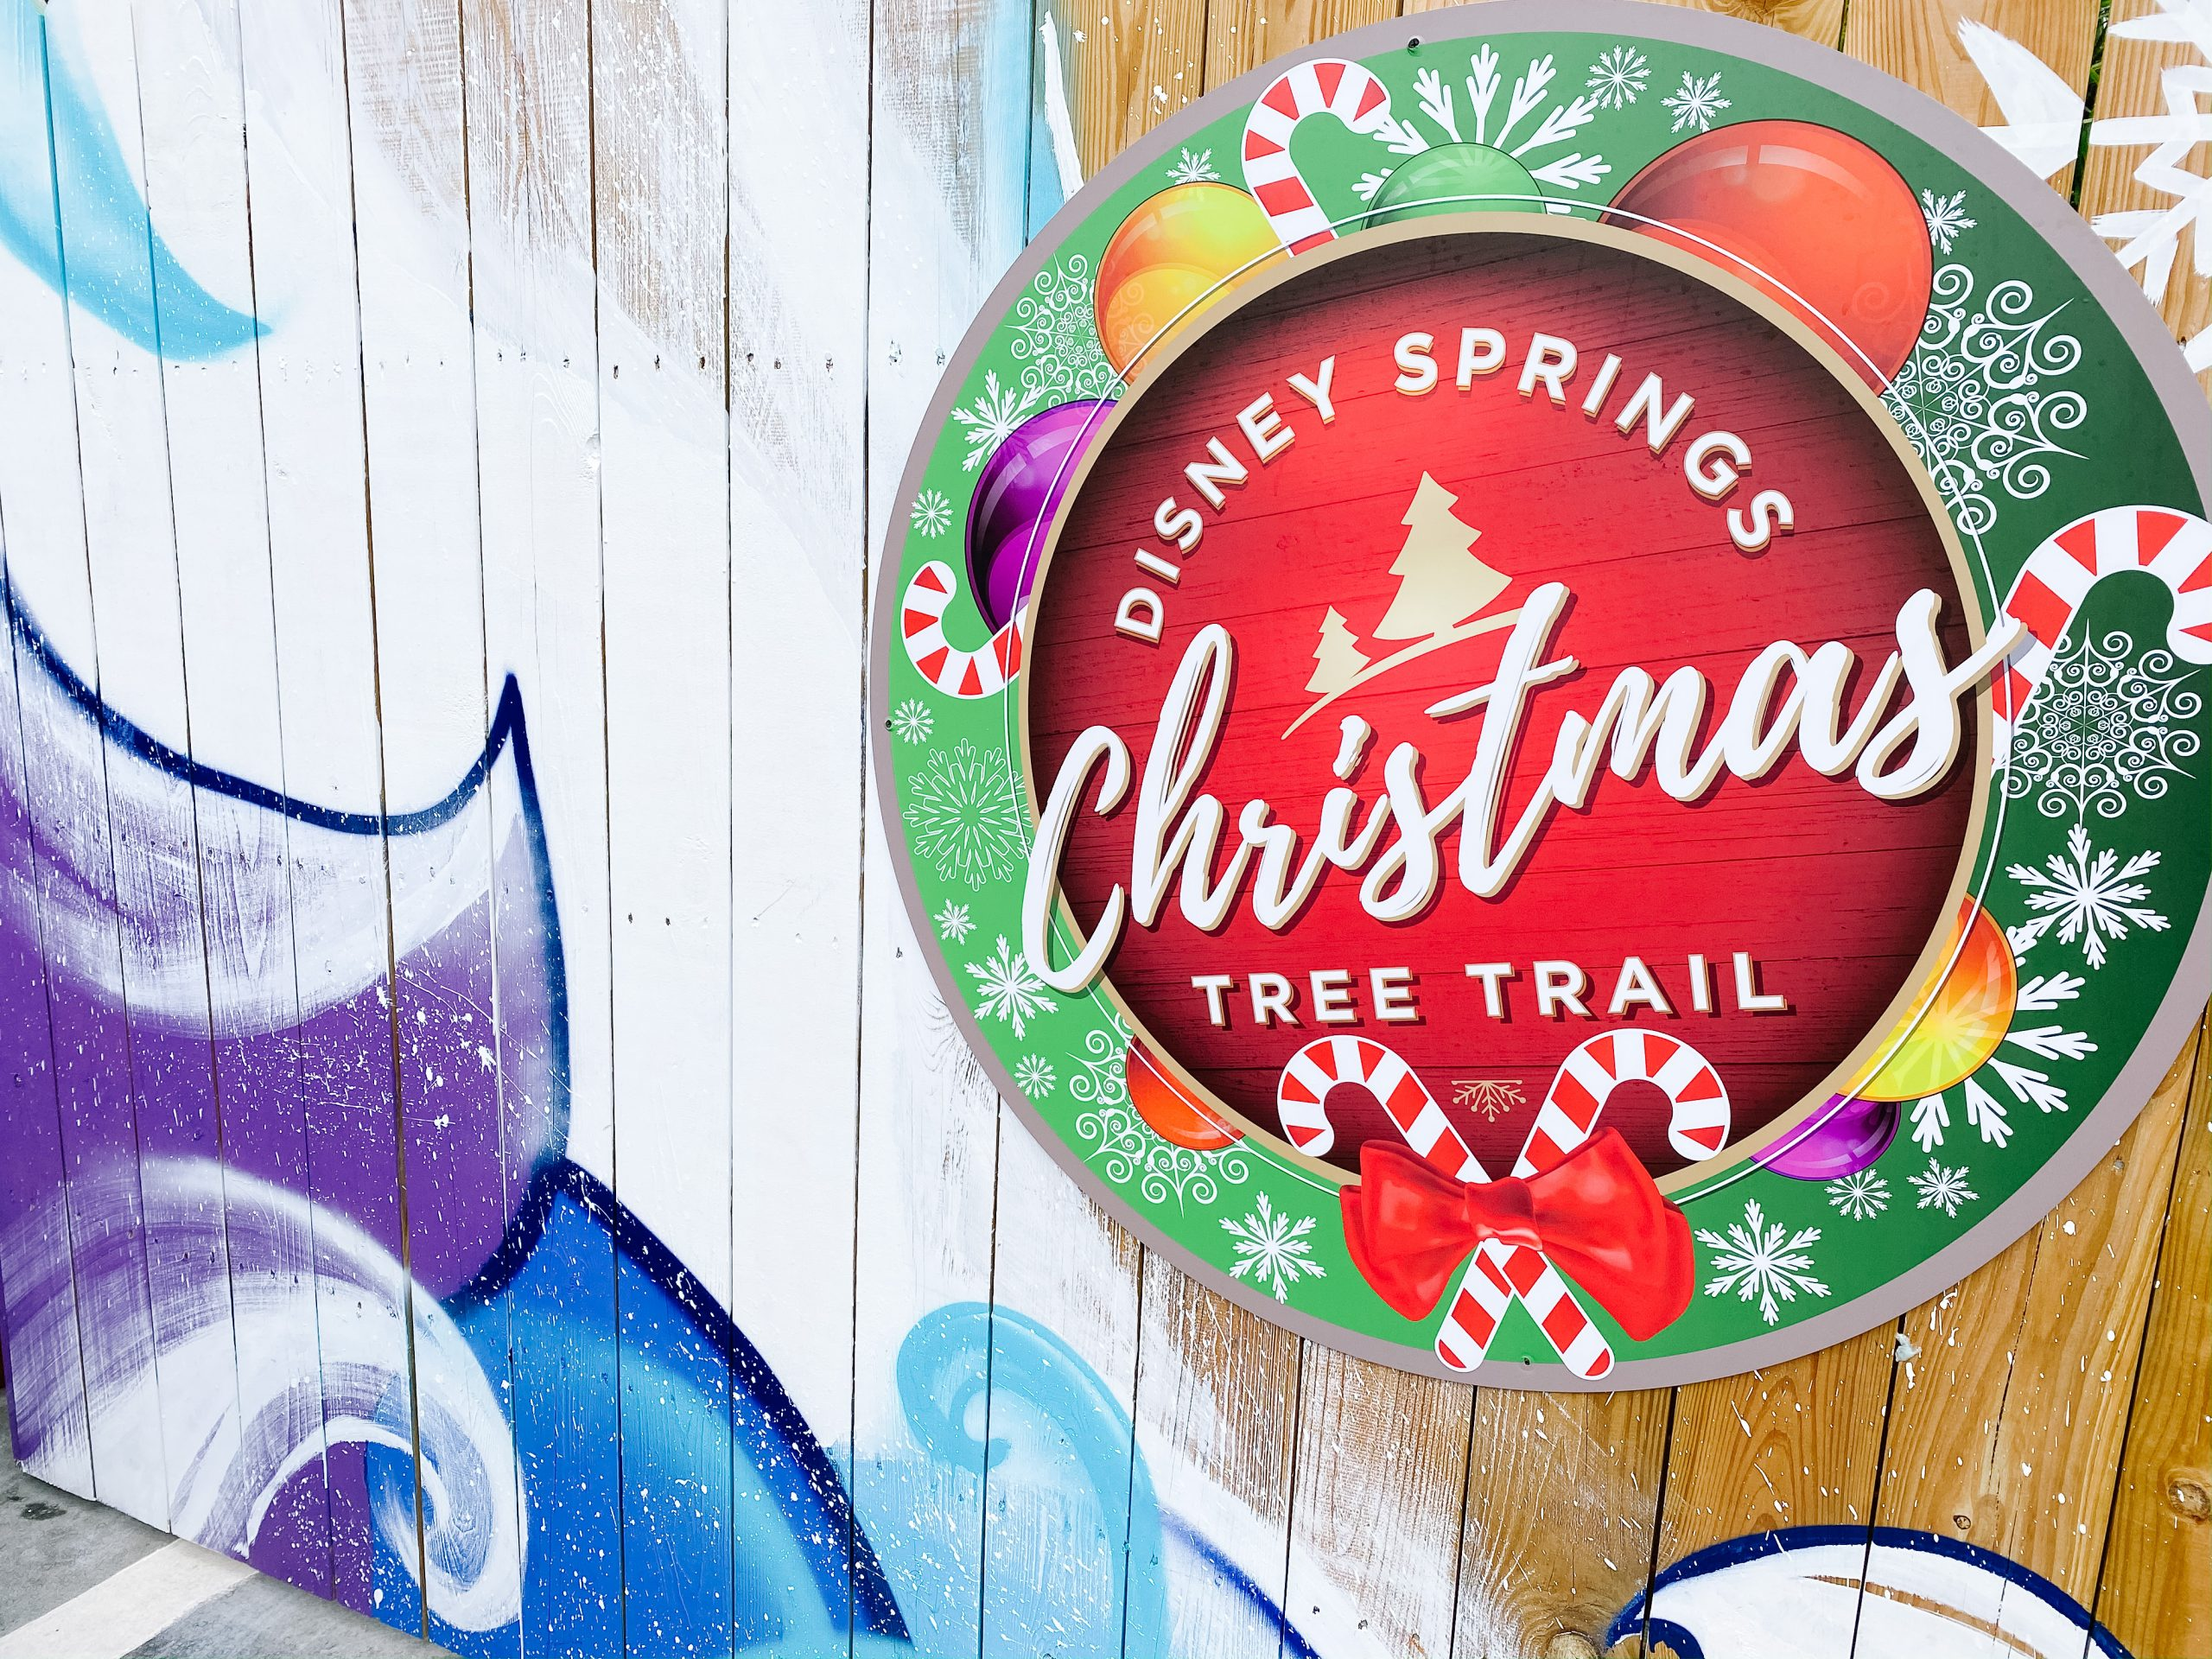 Christmas at Disney Springs - Christmas tree trail details